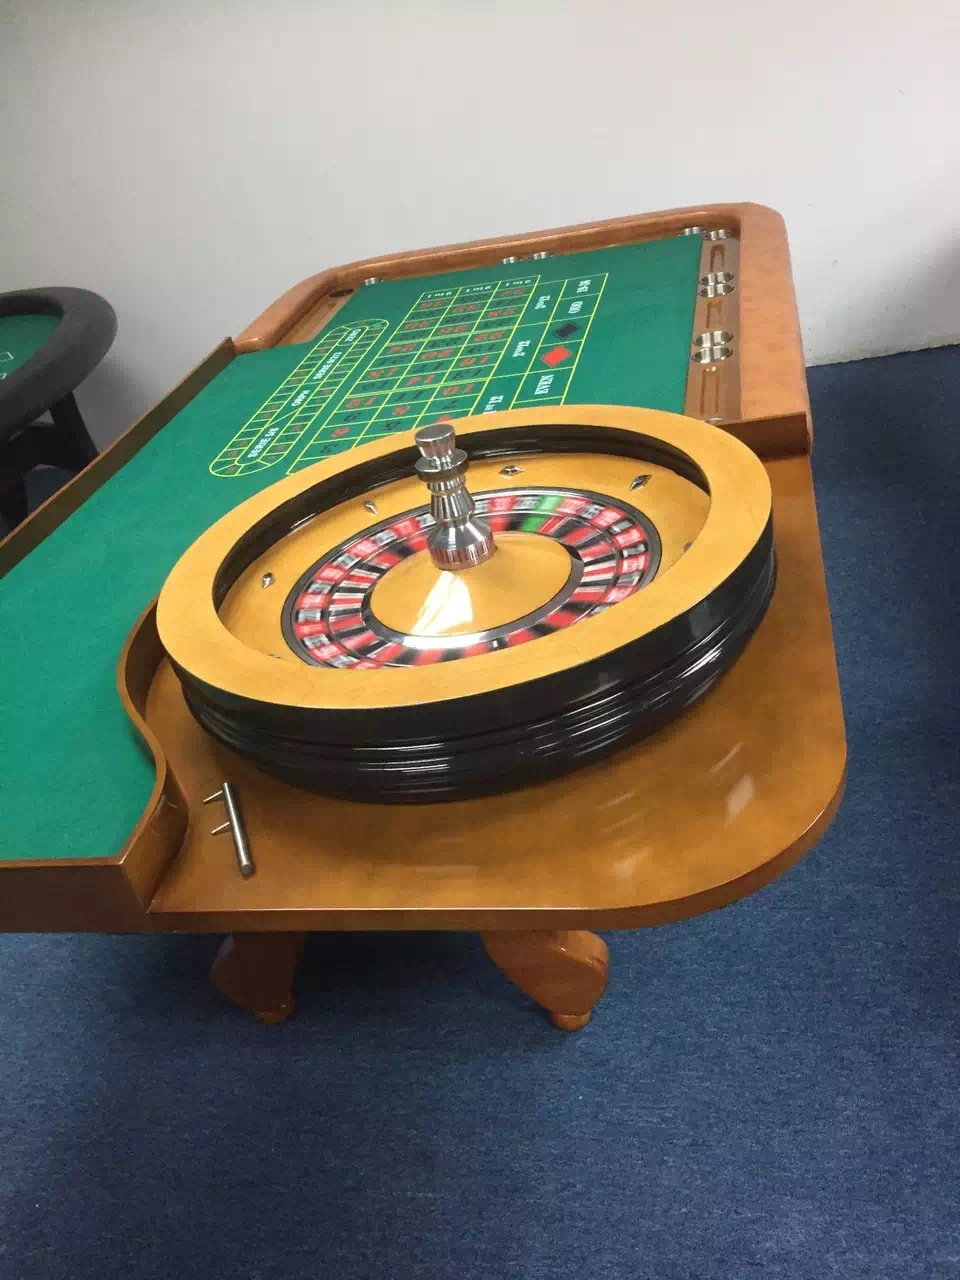 32inch solid roulette wheel of 2colors